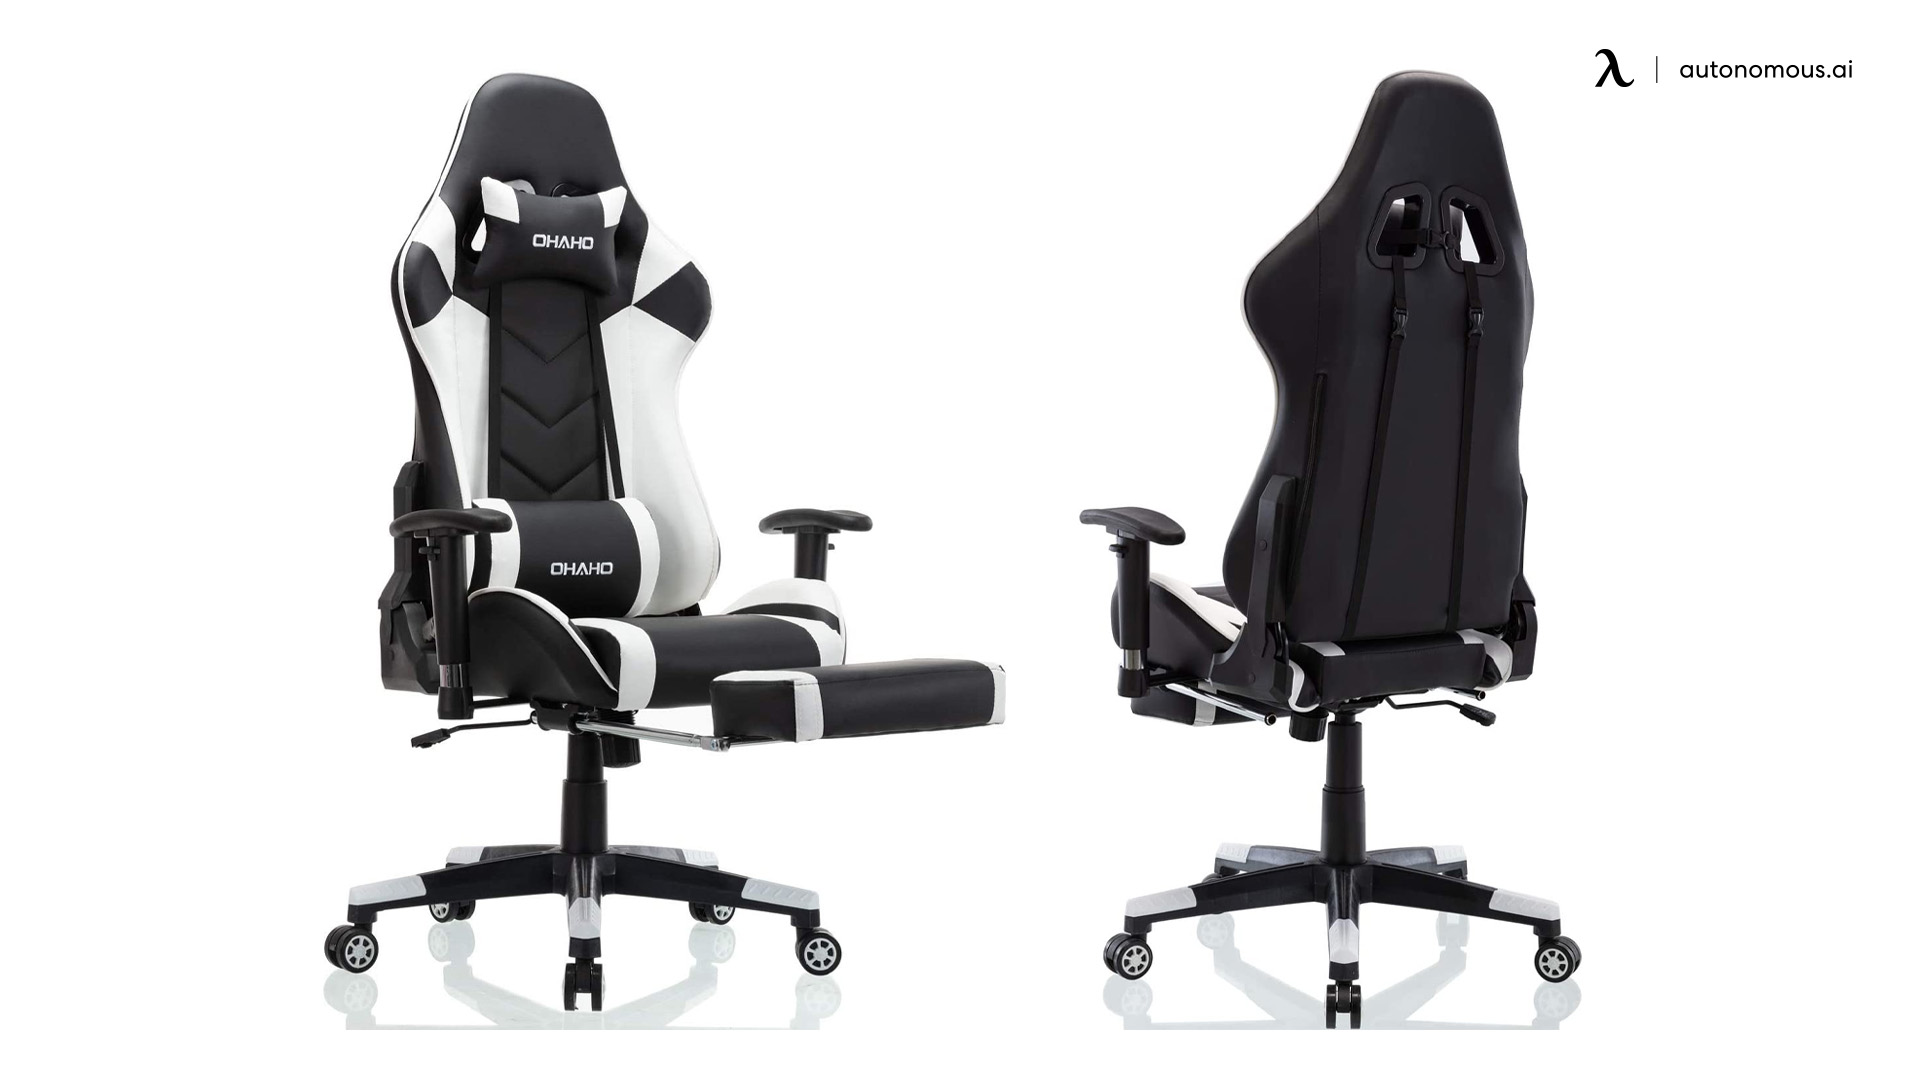 OHAHO Gaming Chair